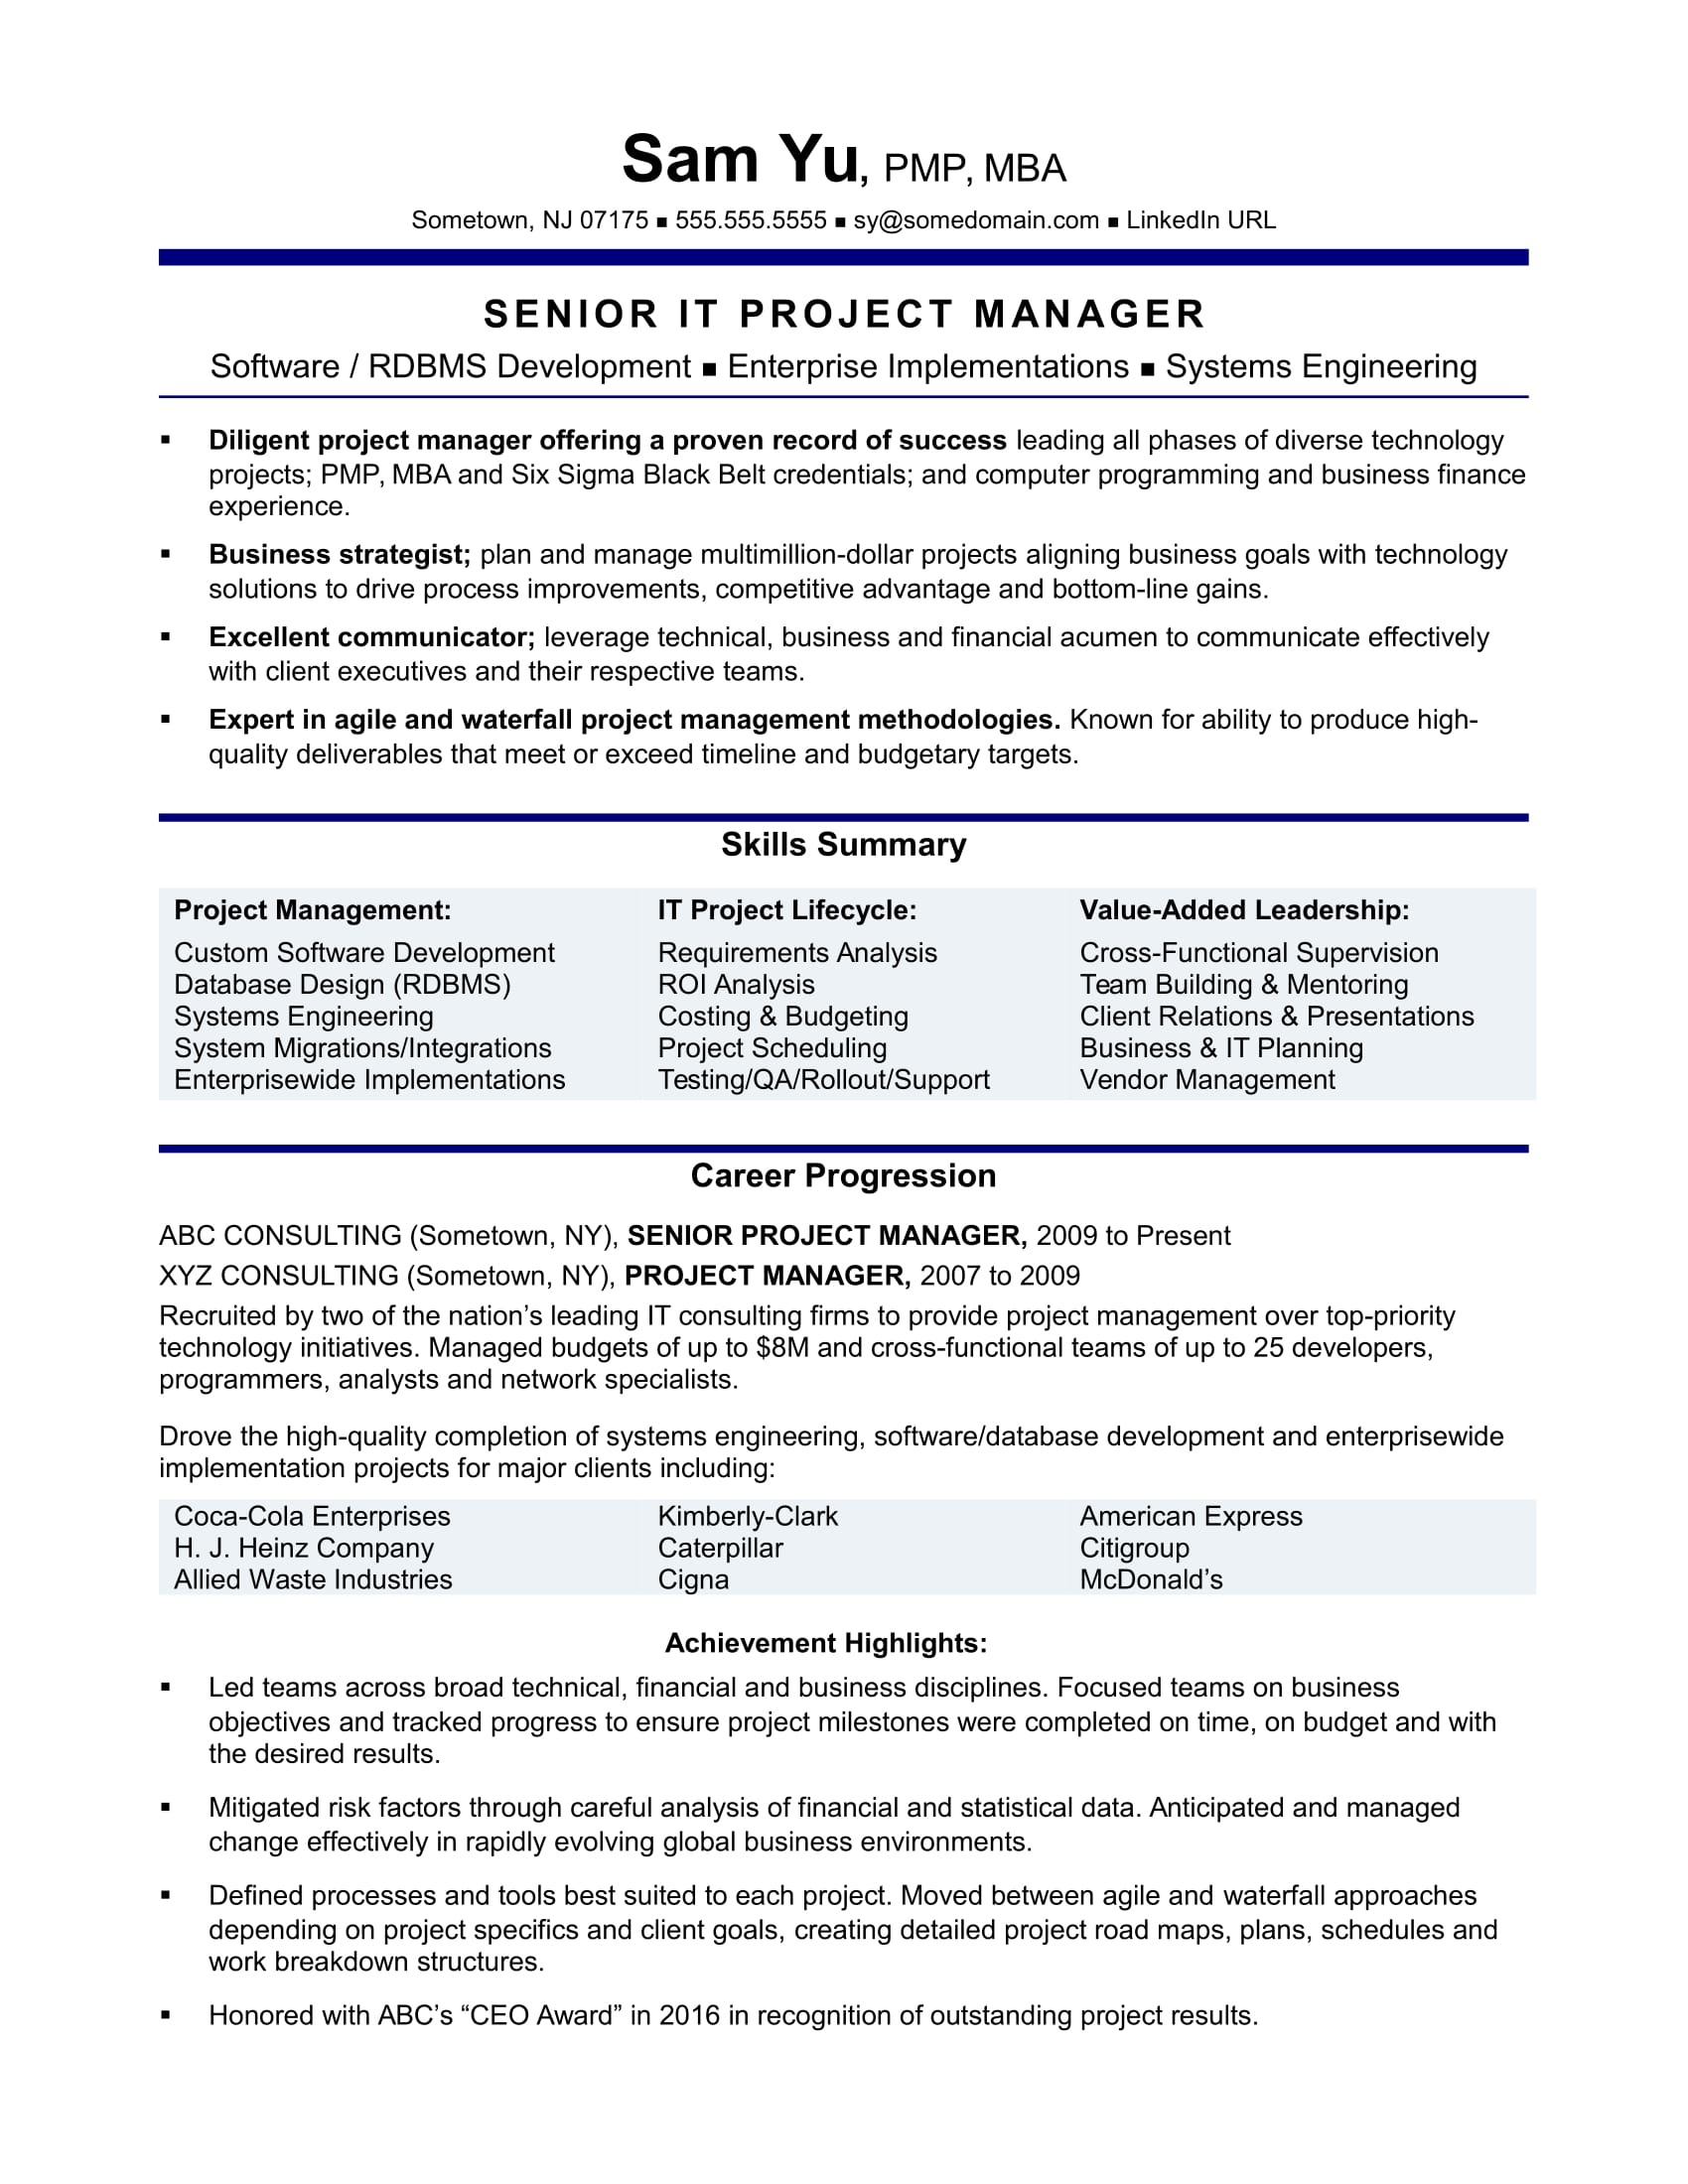 experienced it project manager resume sample monster business process management examples Resume Business Process Management Resume Examples